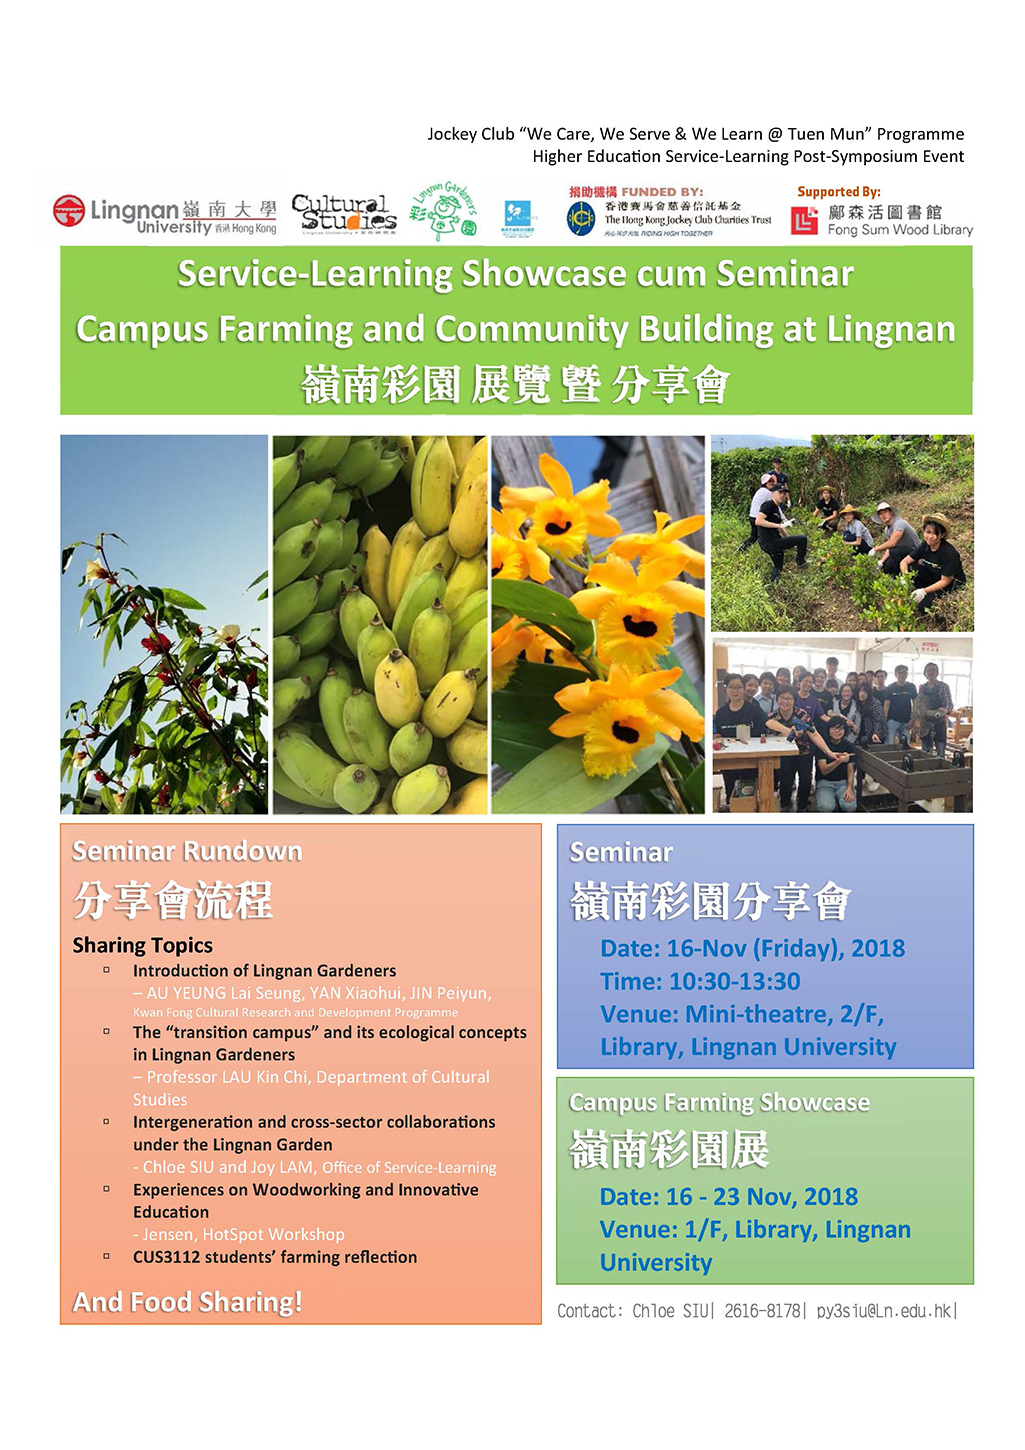 Exhibition of Service-learning showcase cum seminar — campus farming and community building at Lingnan